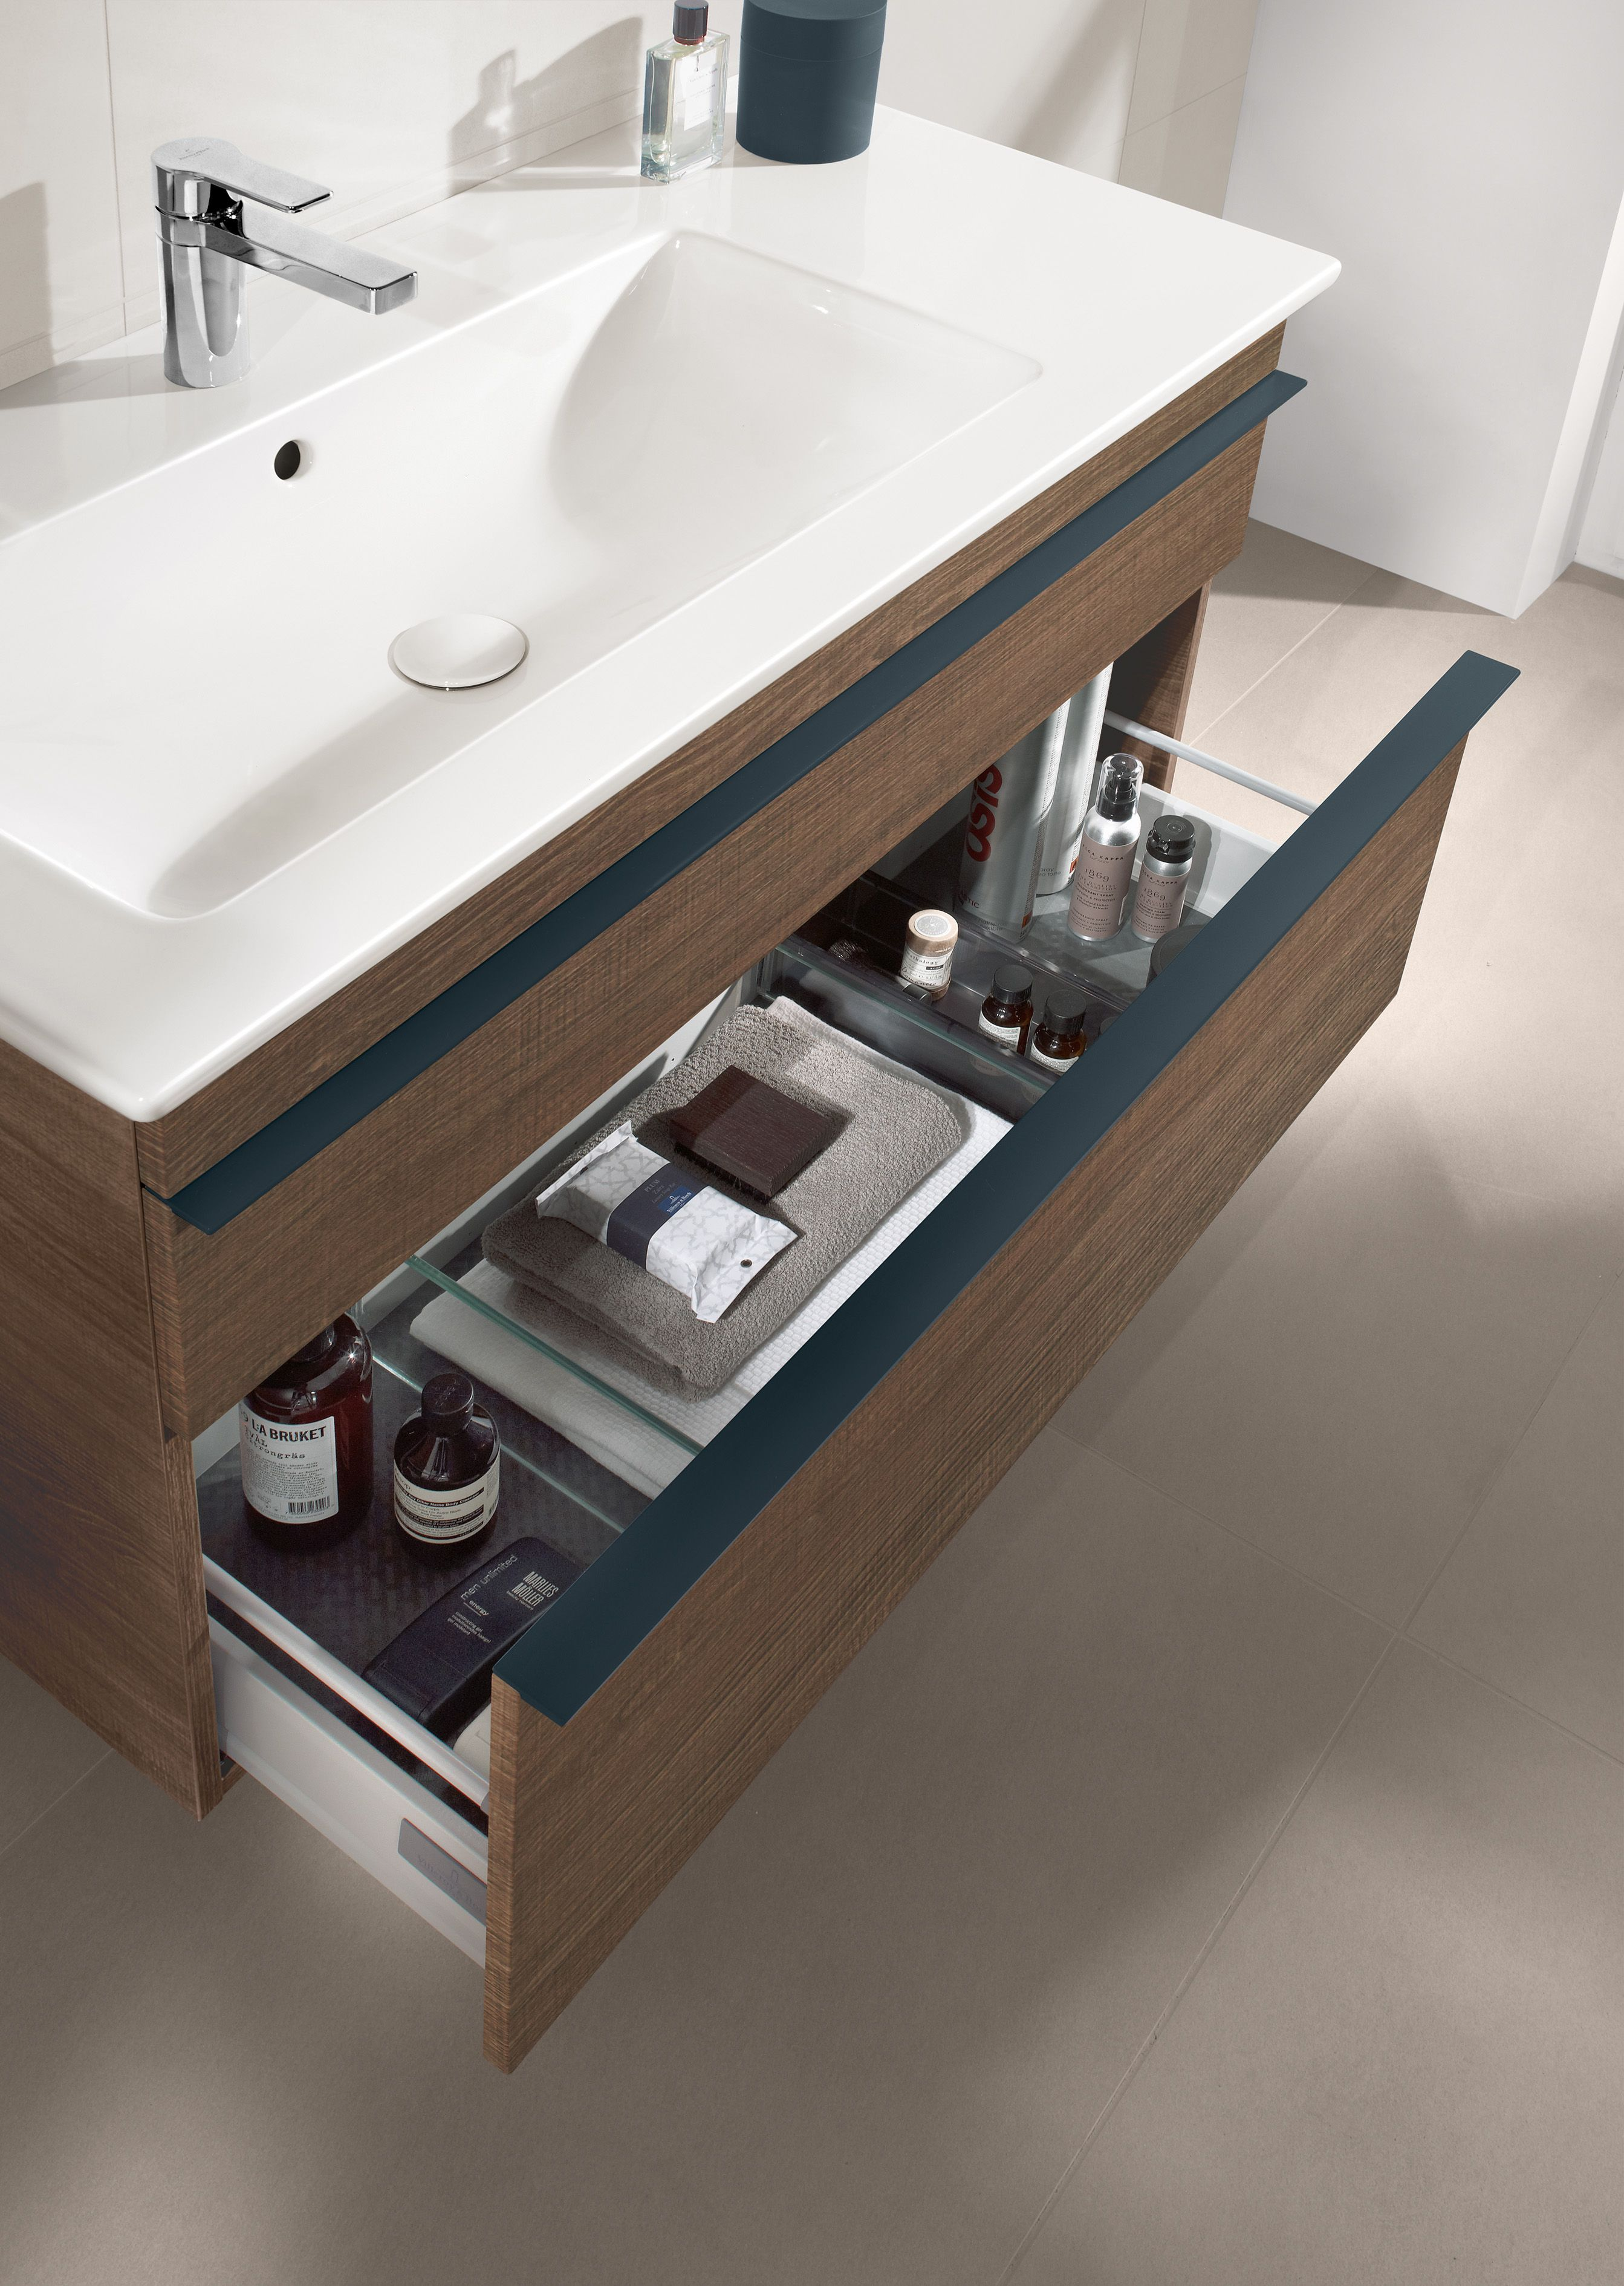 learn more on great villeroy boch bathroom furniture here wwwvilleroyboch - Villeroy And Boch Baths